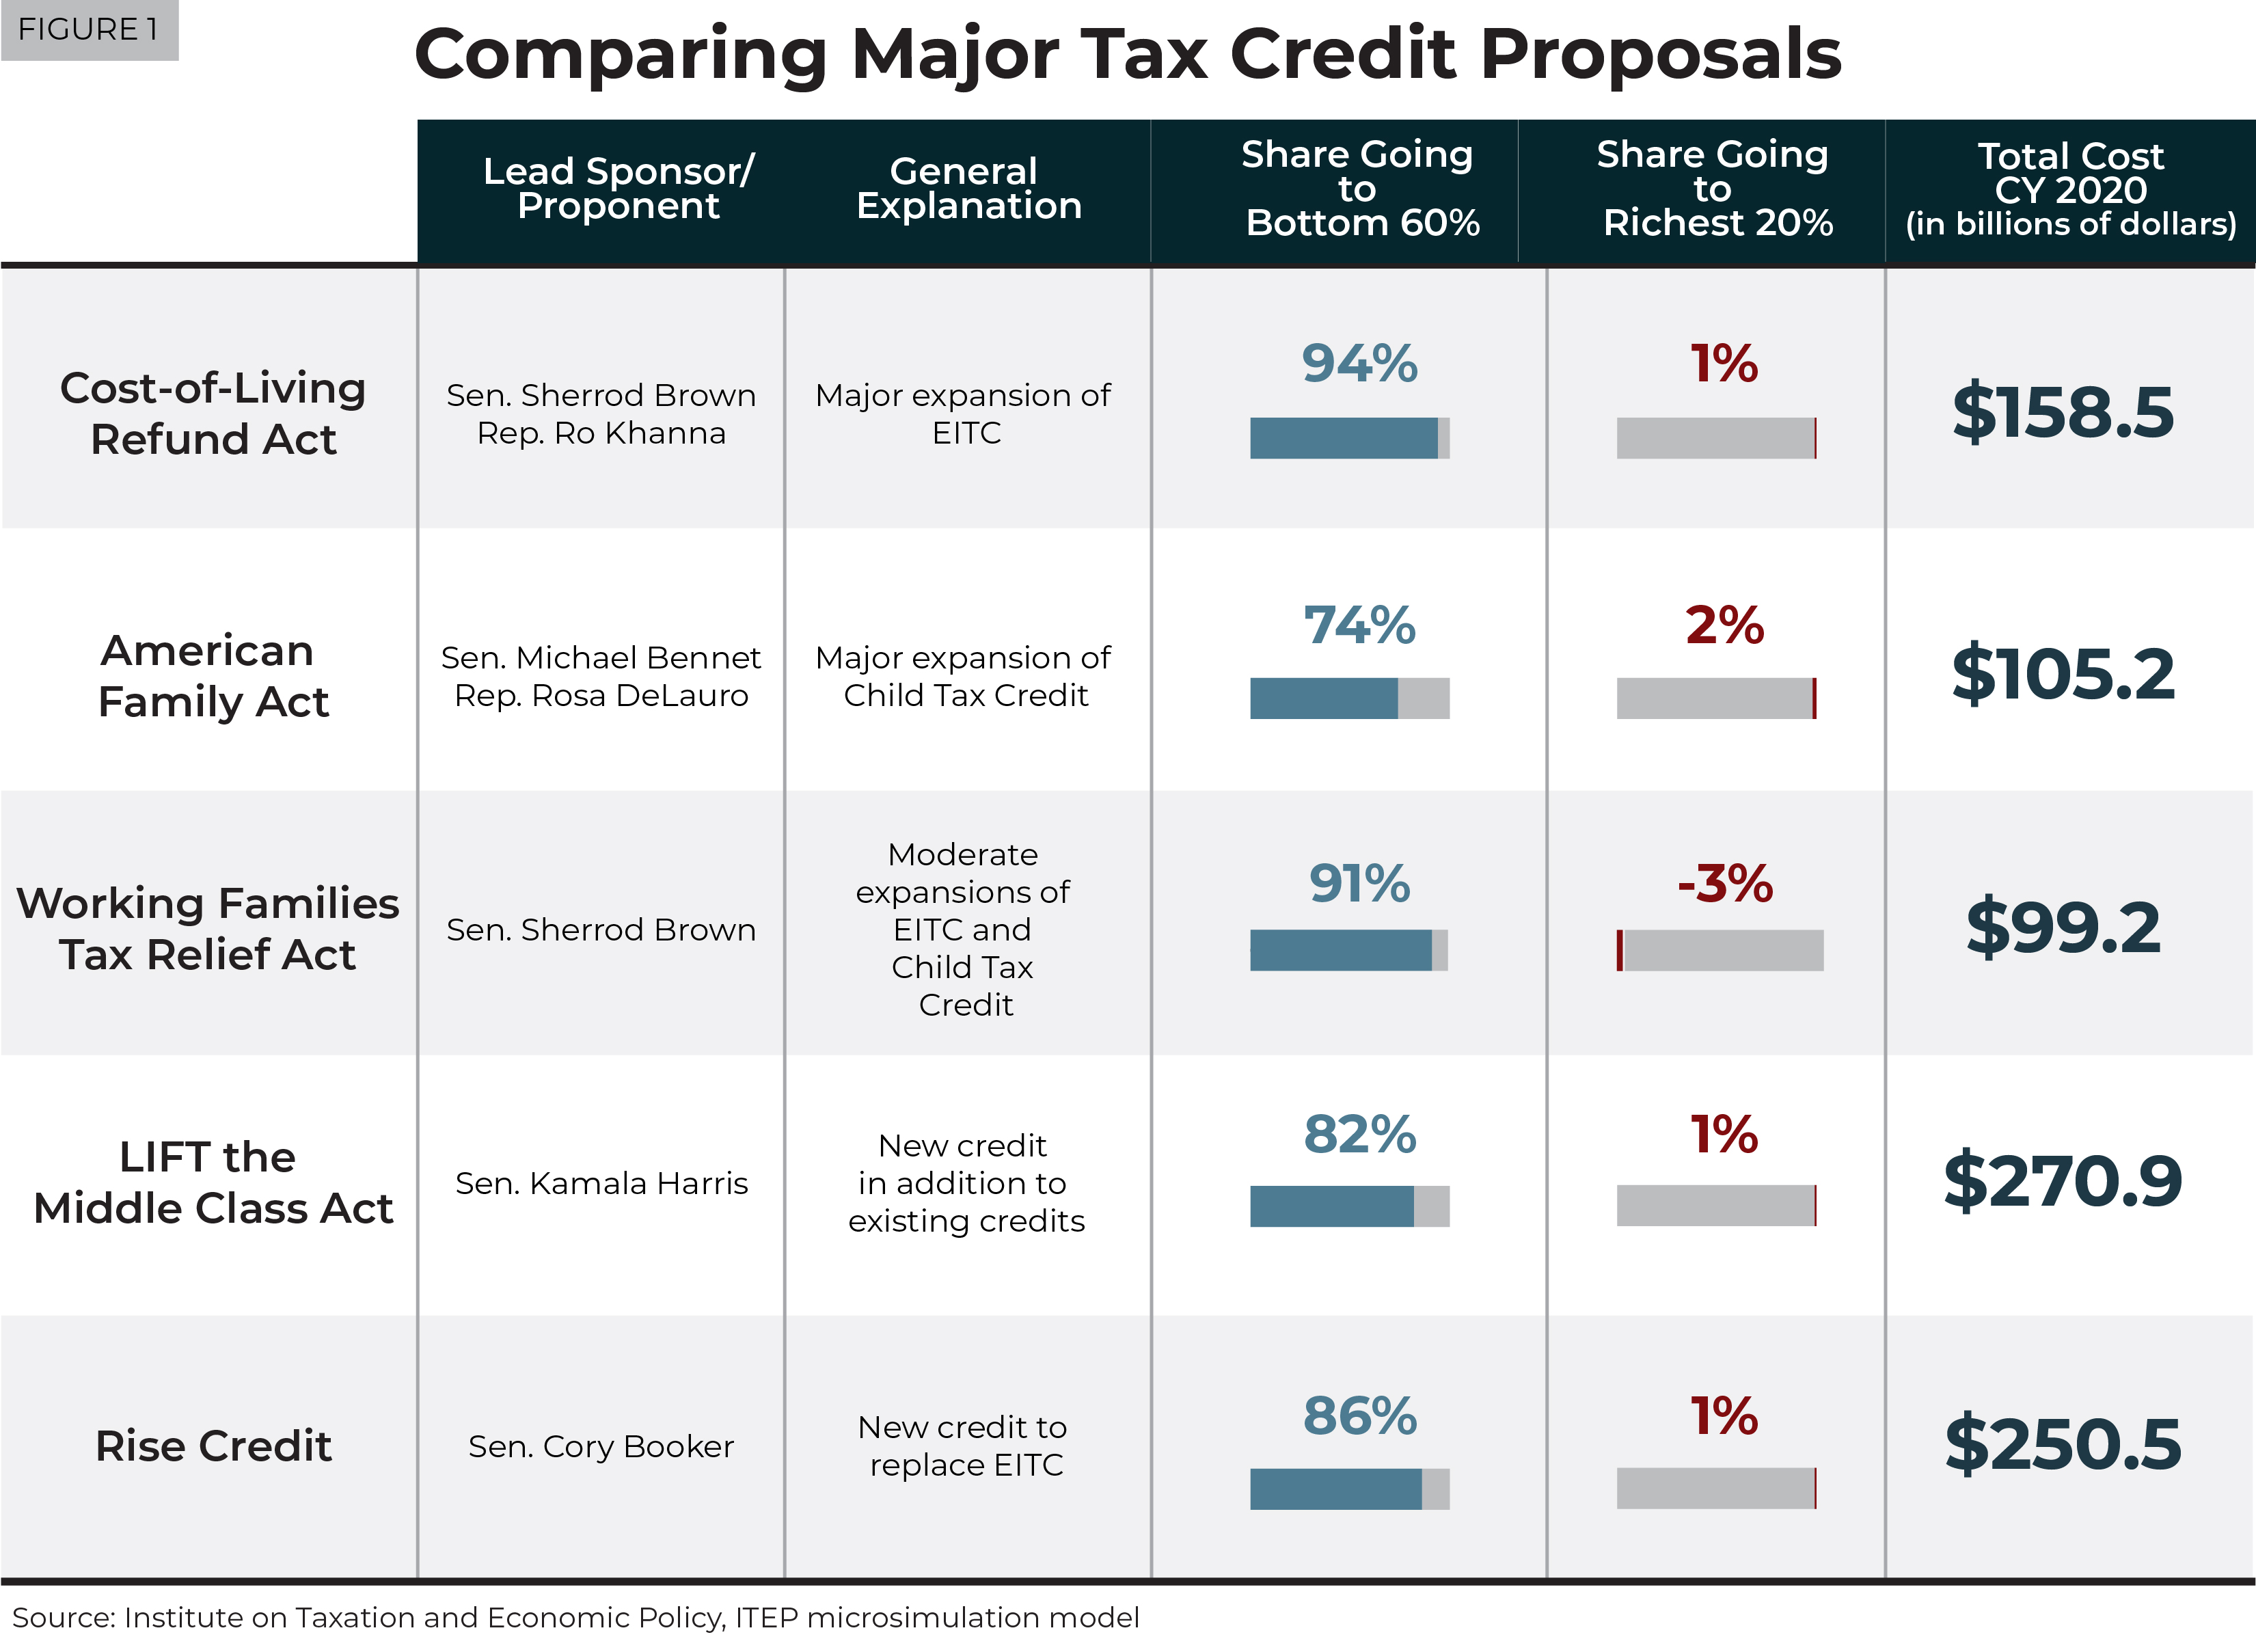 Proposals for Refundable Tax Credits Are Light Years from Tax Policies Enacted in Recent Years